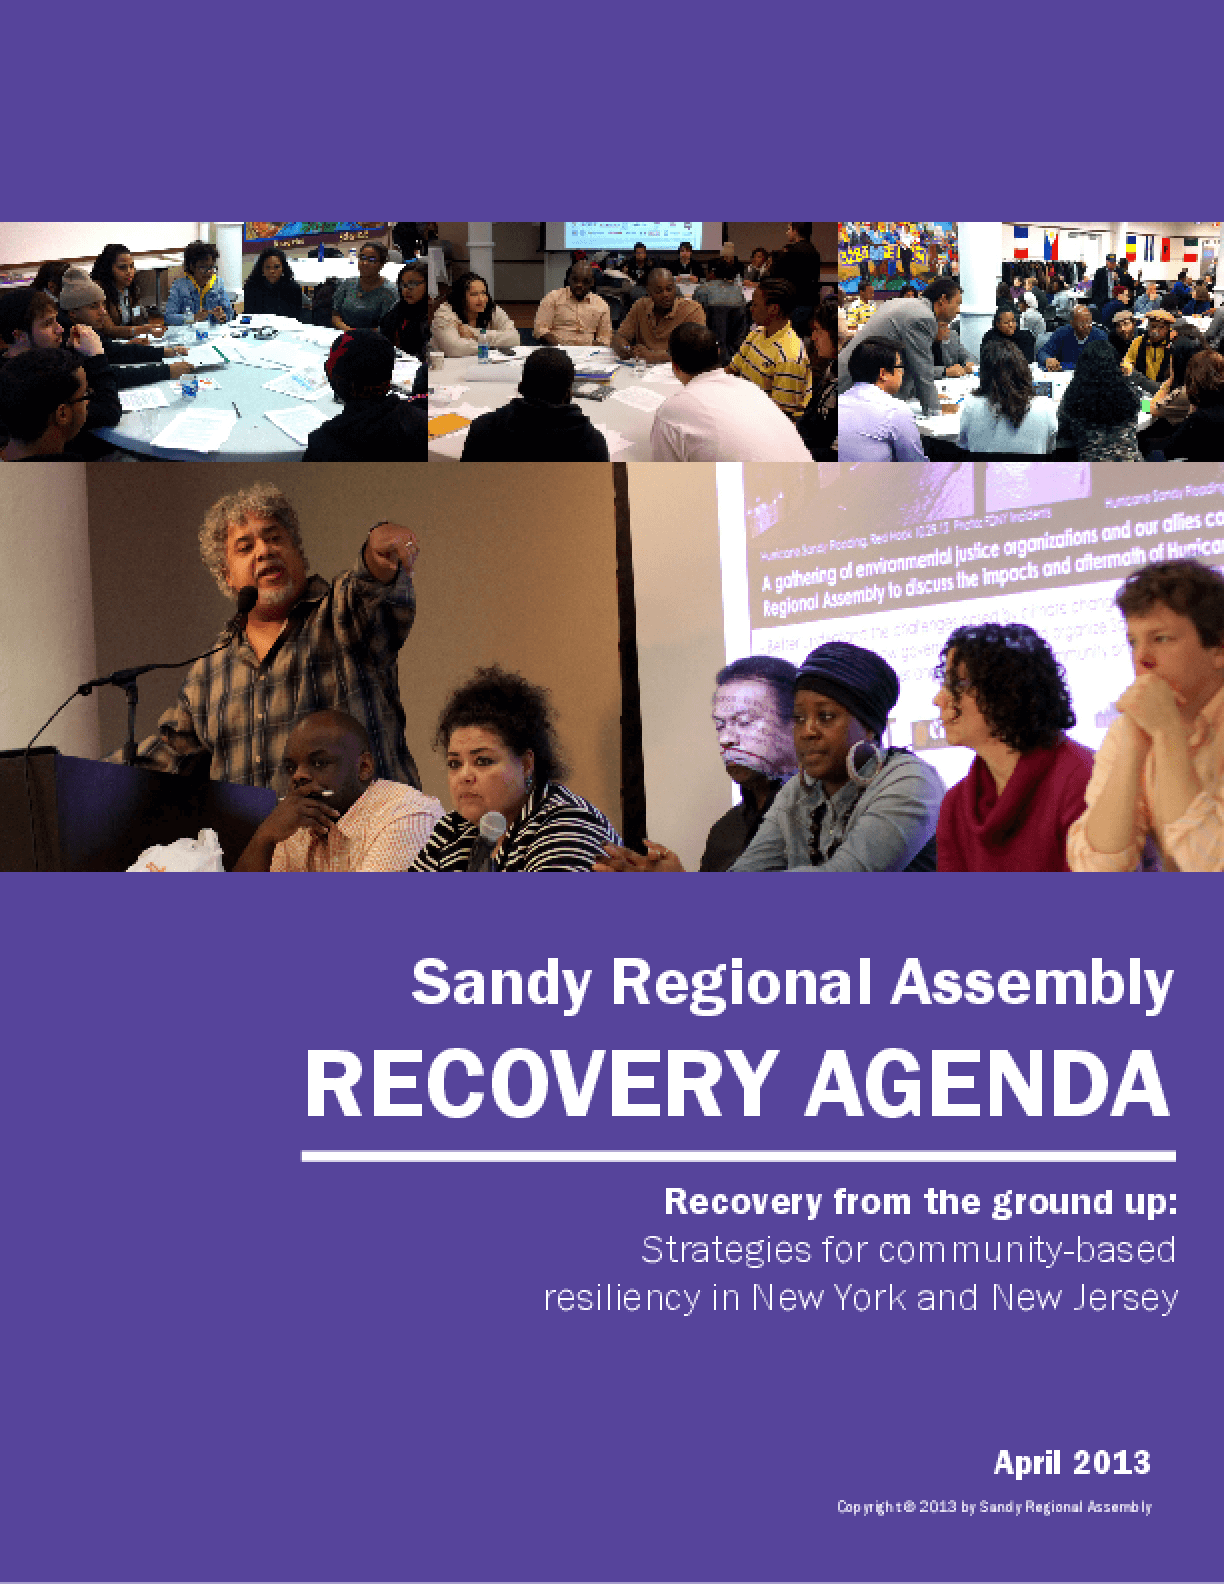 Sandy Regional Assembly Recovery Agenda